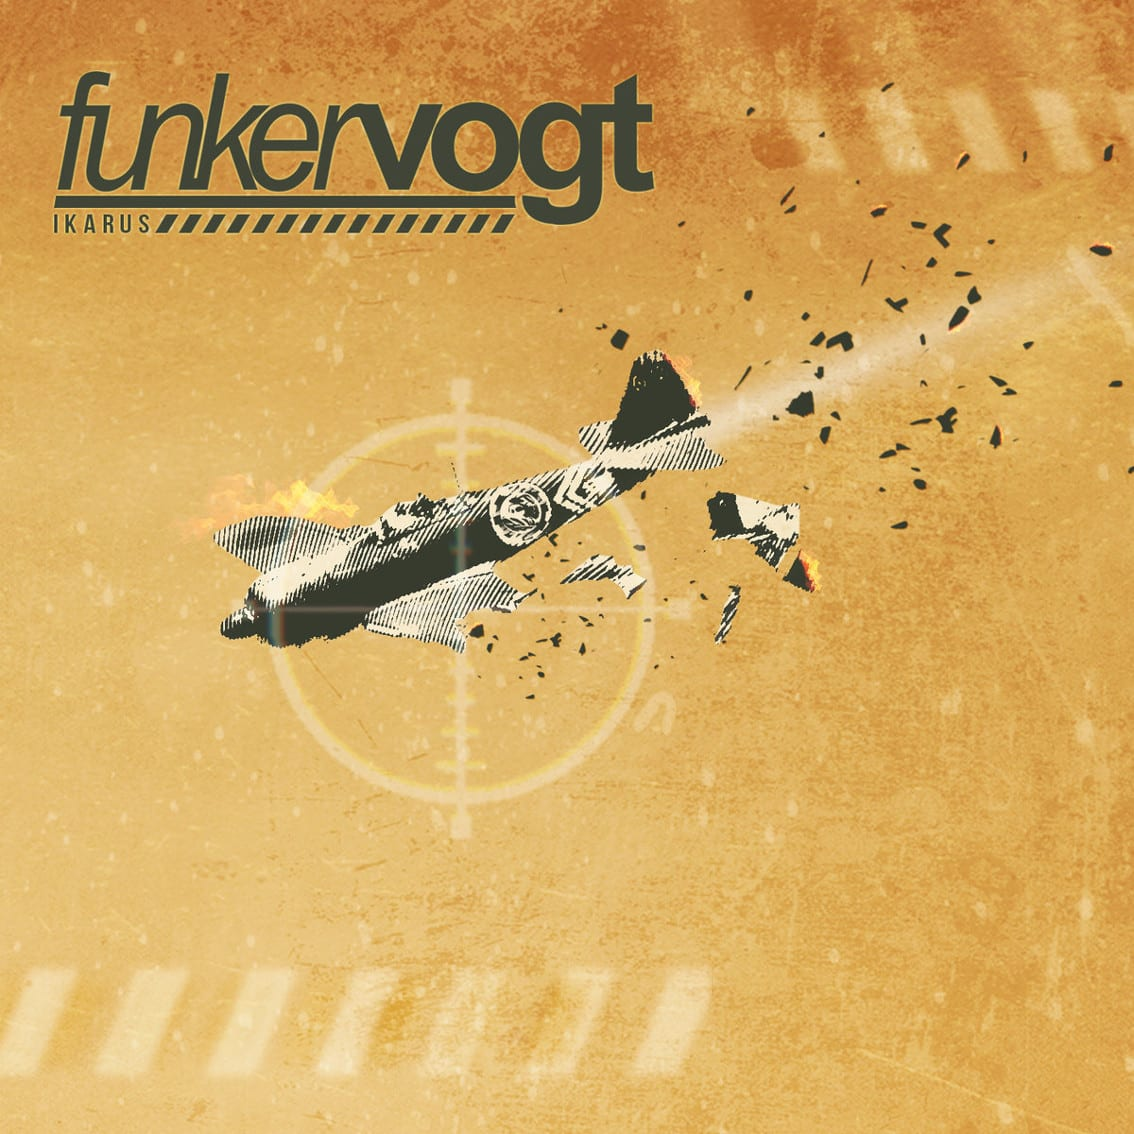 Funker Vogt launch'Ikarus' video to announce new EP - watch it on Side-Line